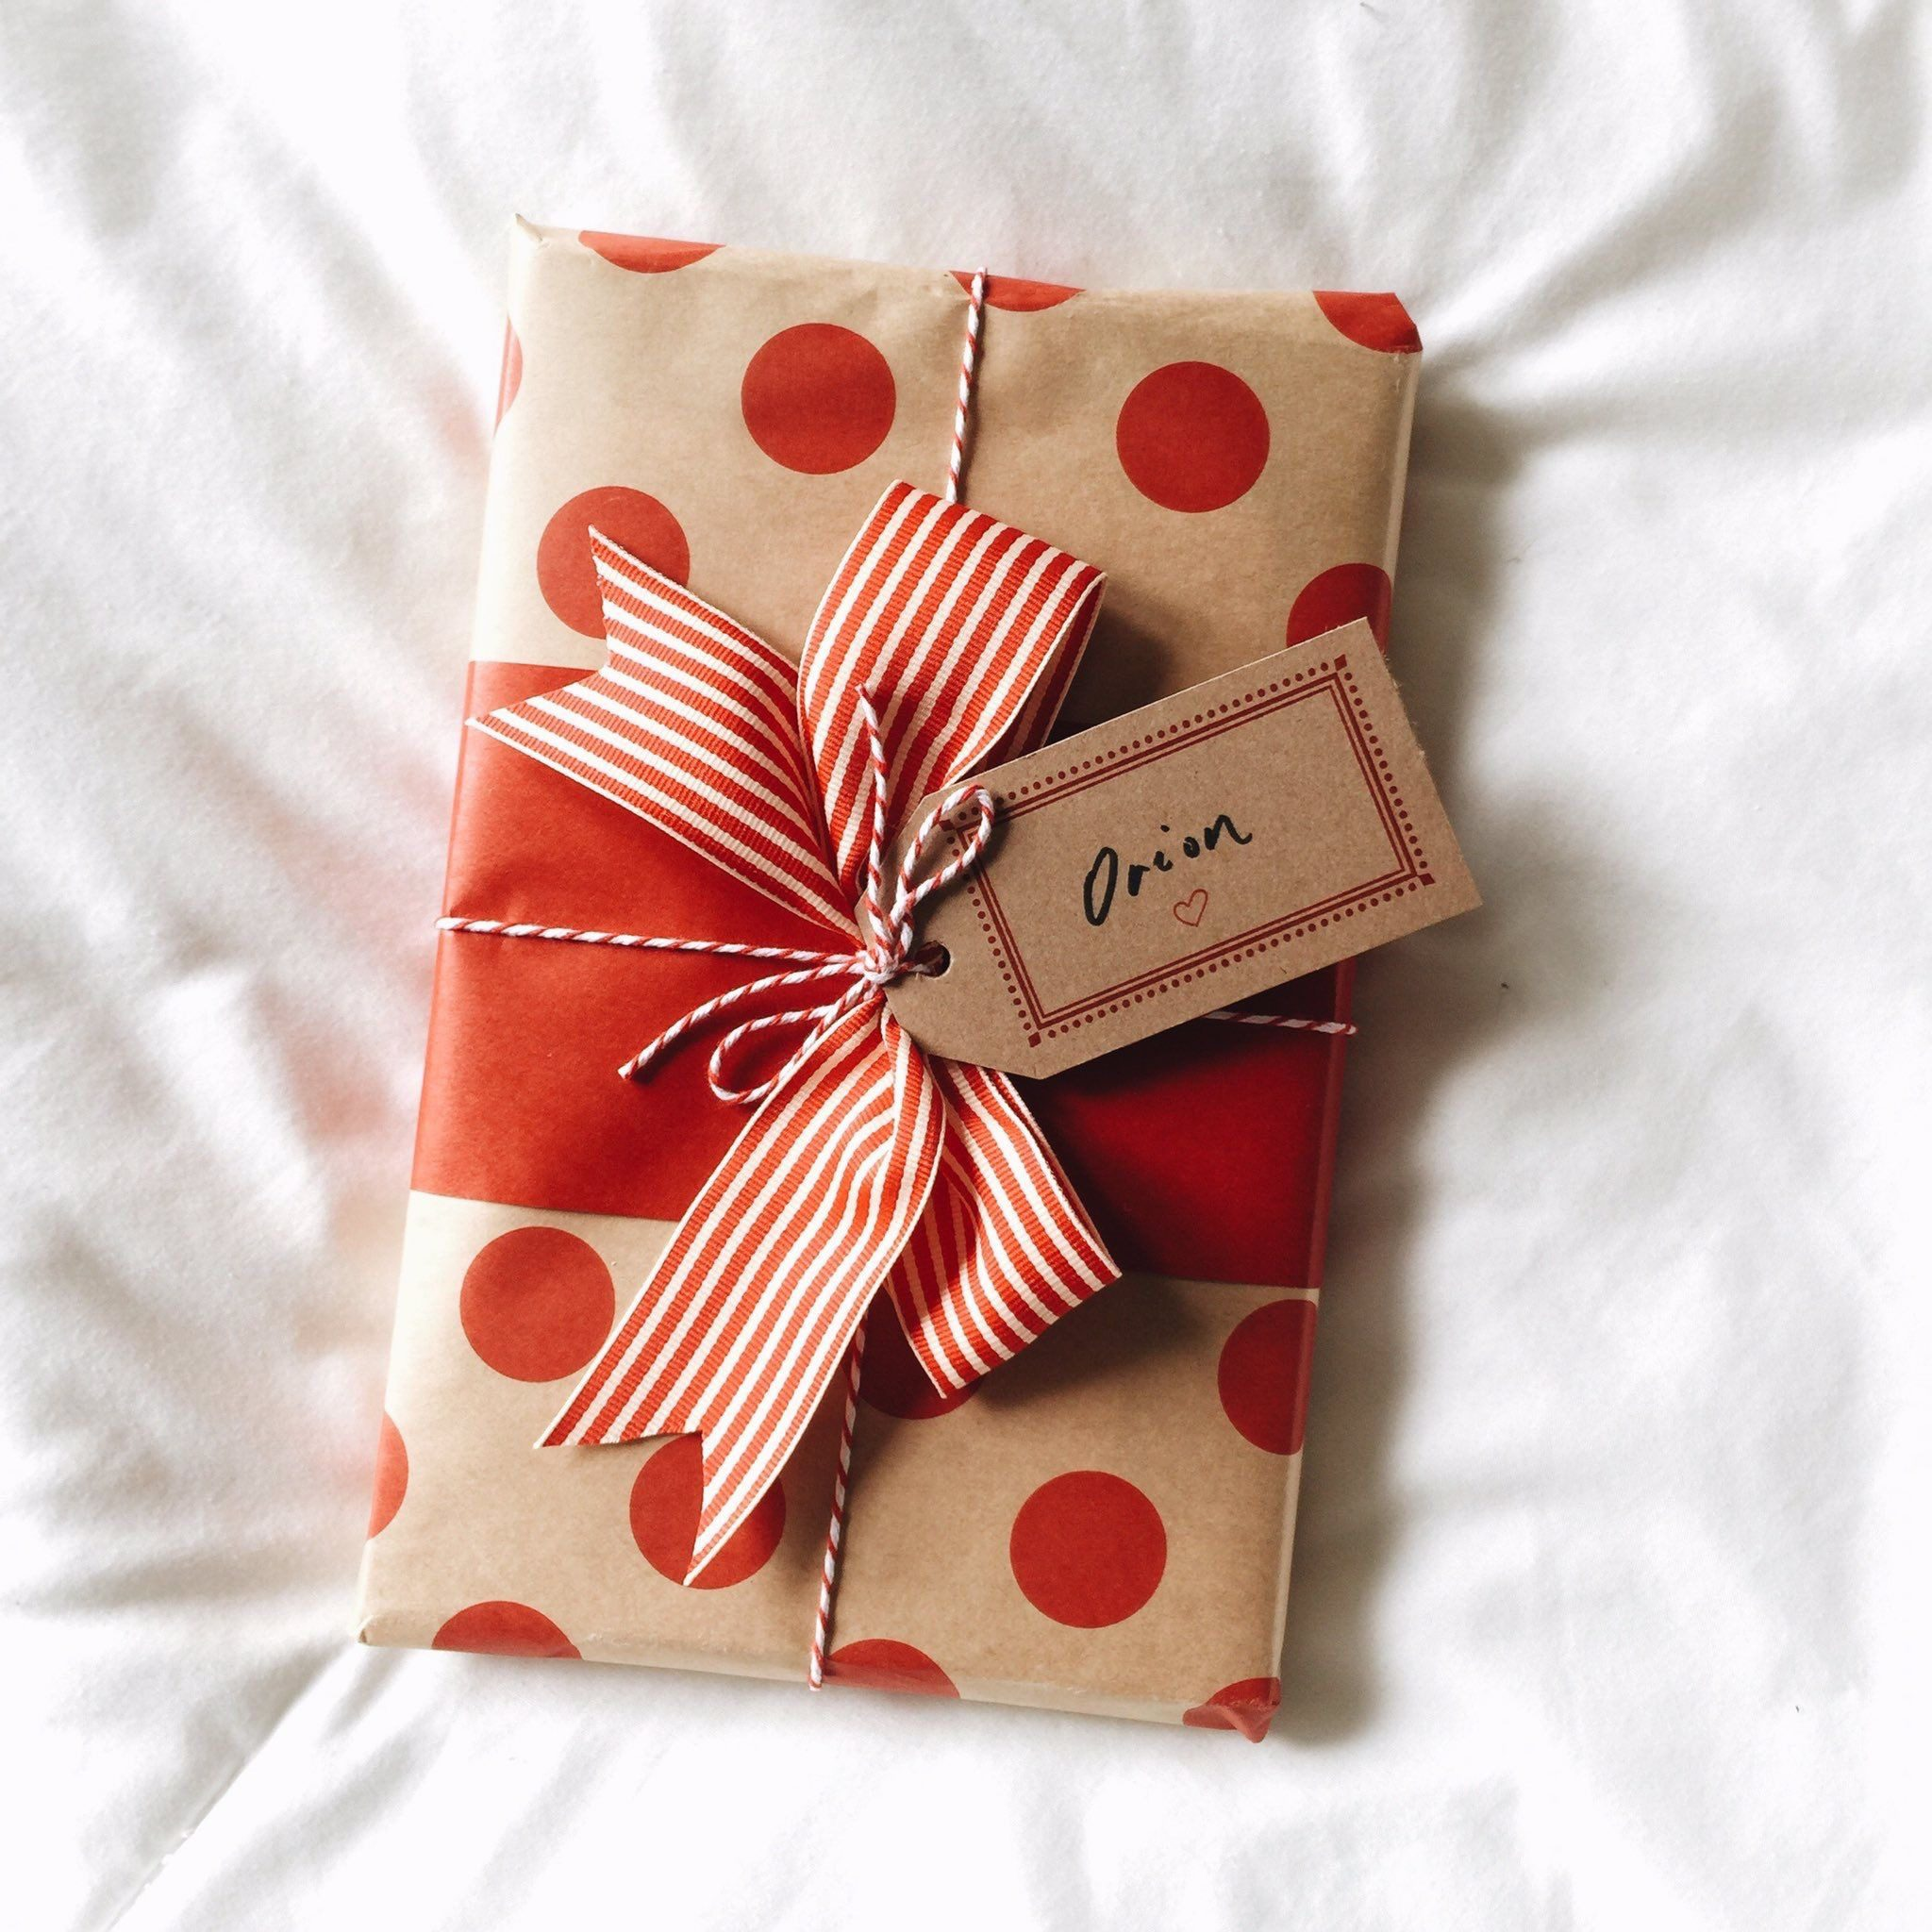 Red polka dot Christmas gift with ribbon on white background